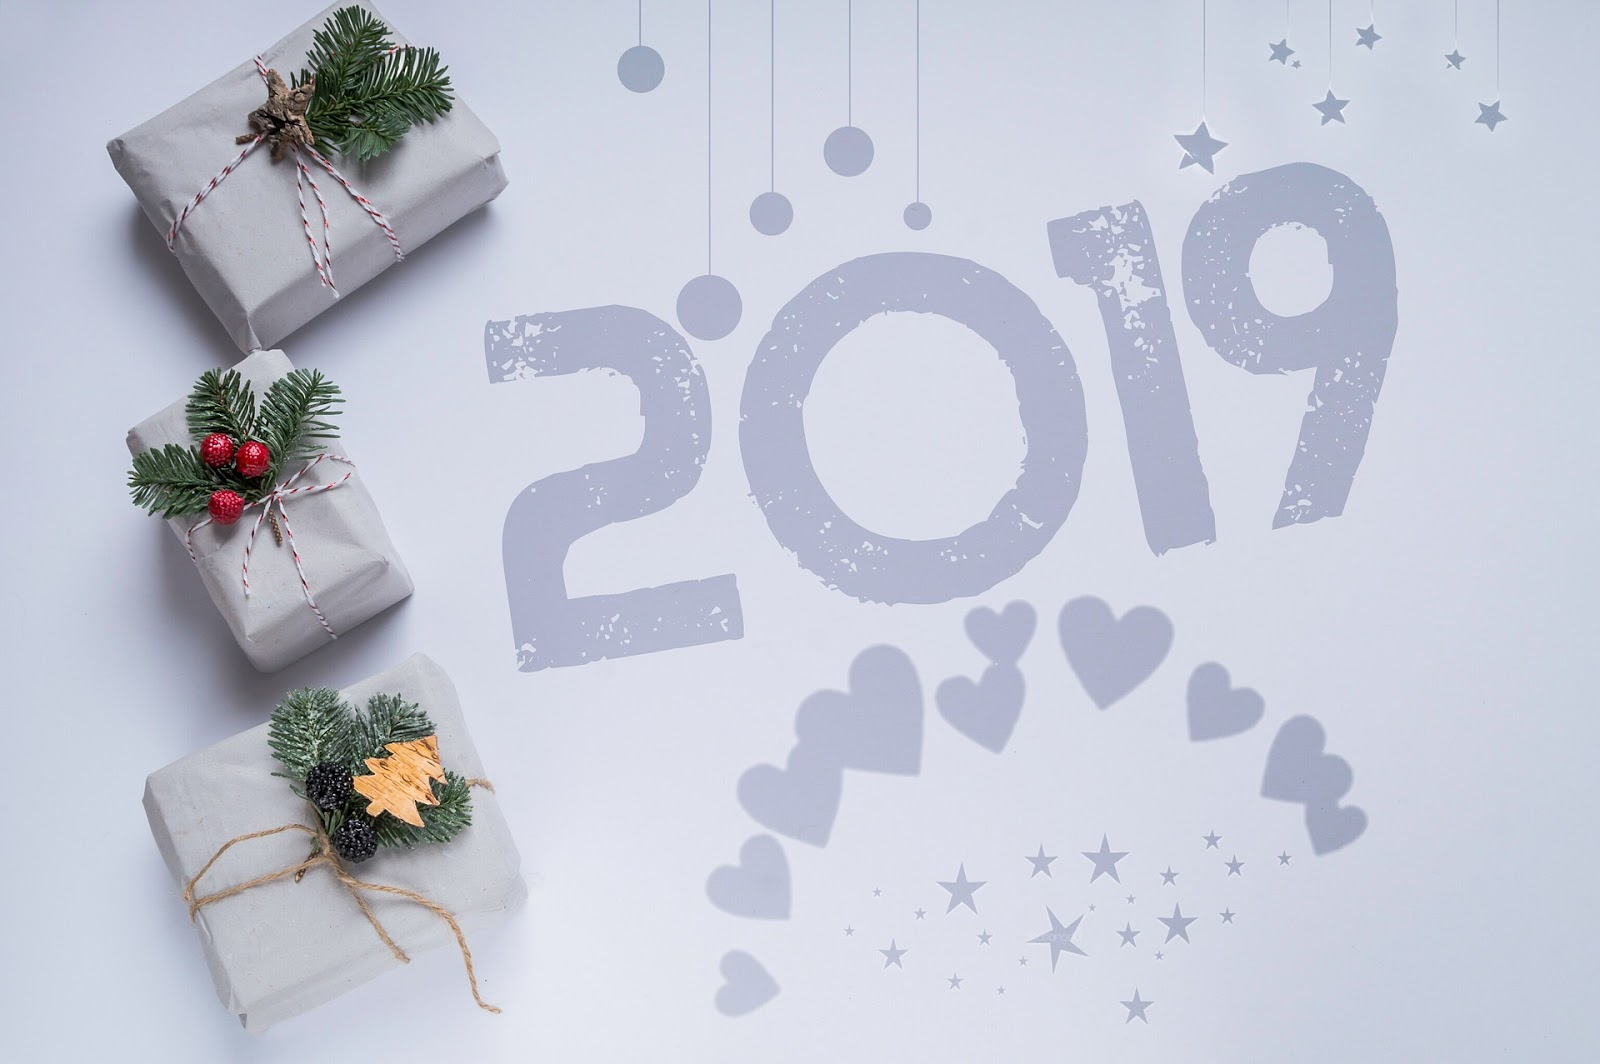 Wish You A Happy New Year 2019 Eve Day Messages Quotes Wishes